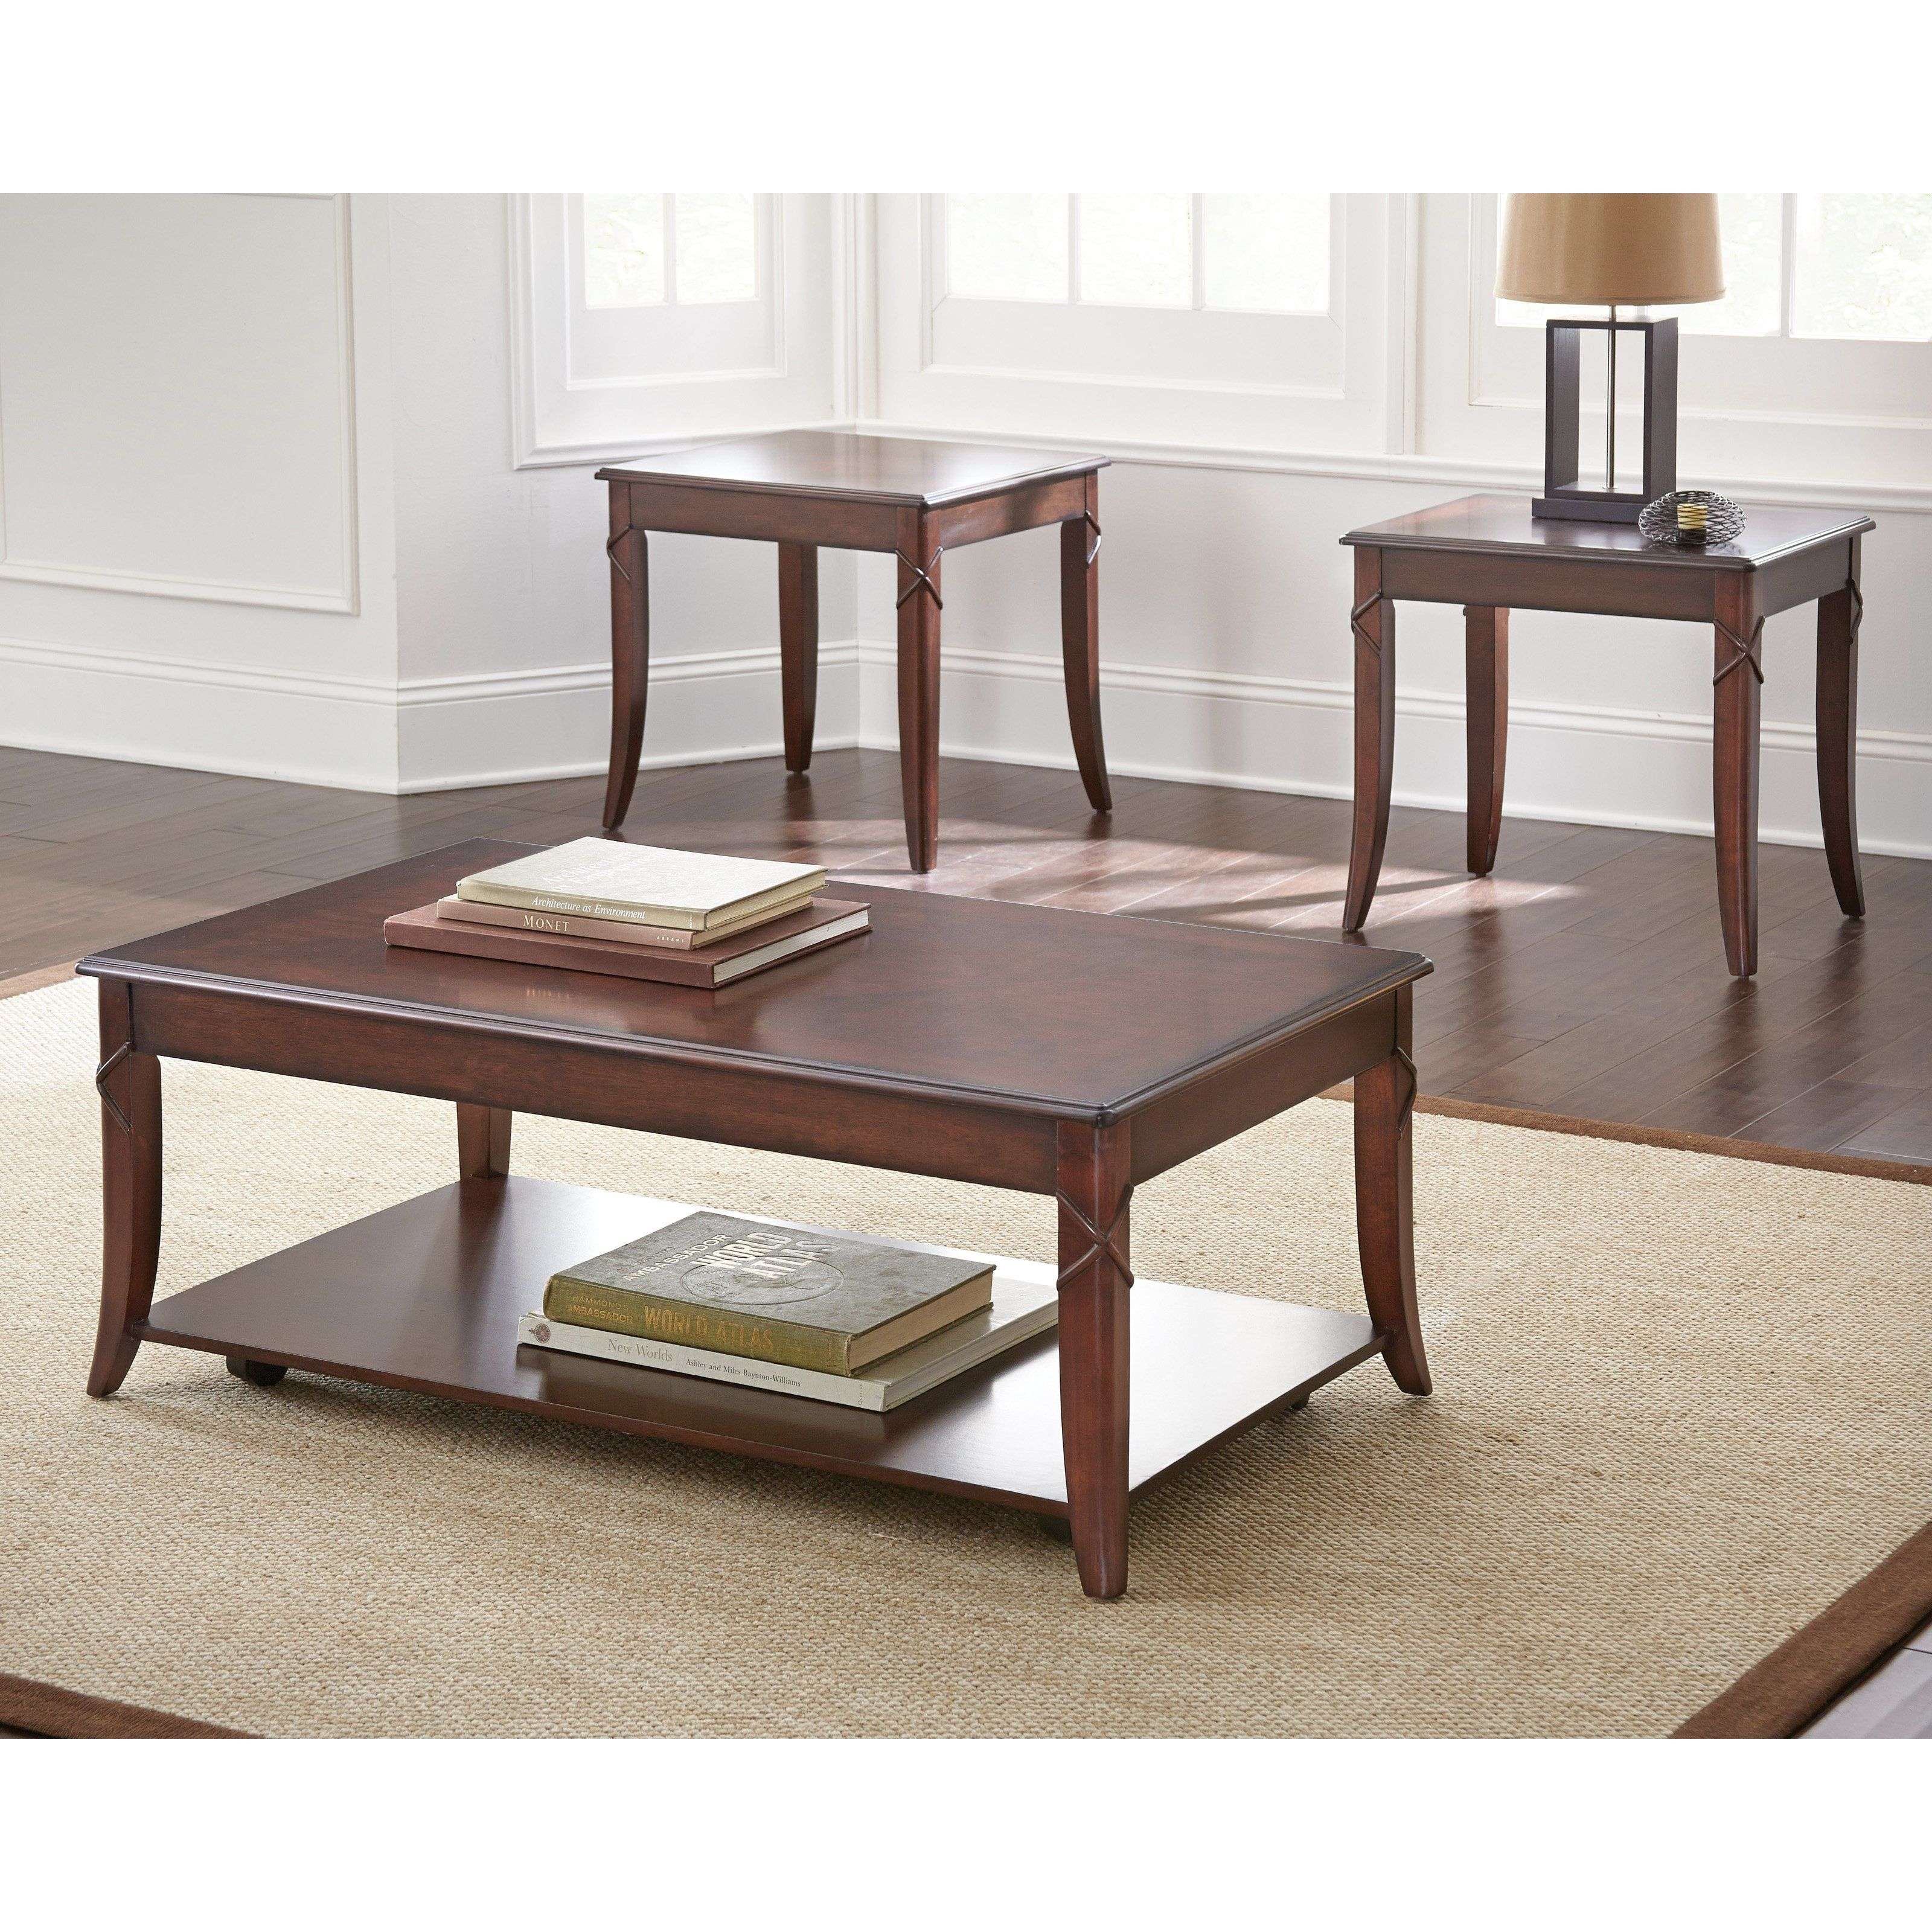 Best Steve Silver Draco 3 Piece Occasional Table Set Dr3000 400 x 300